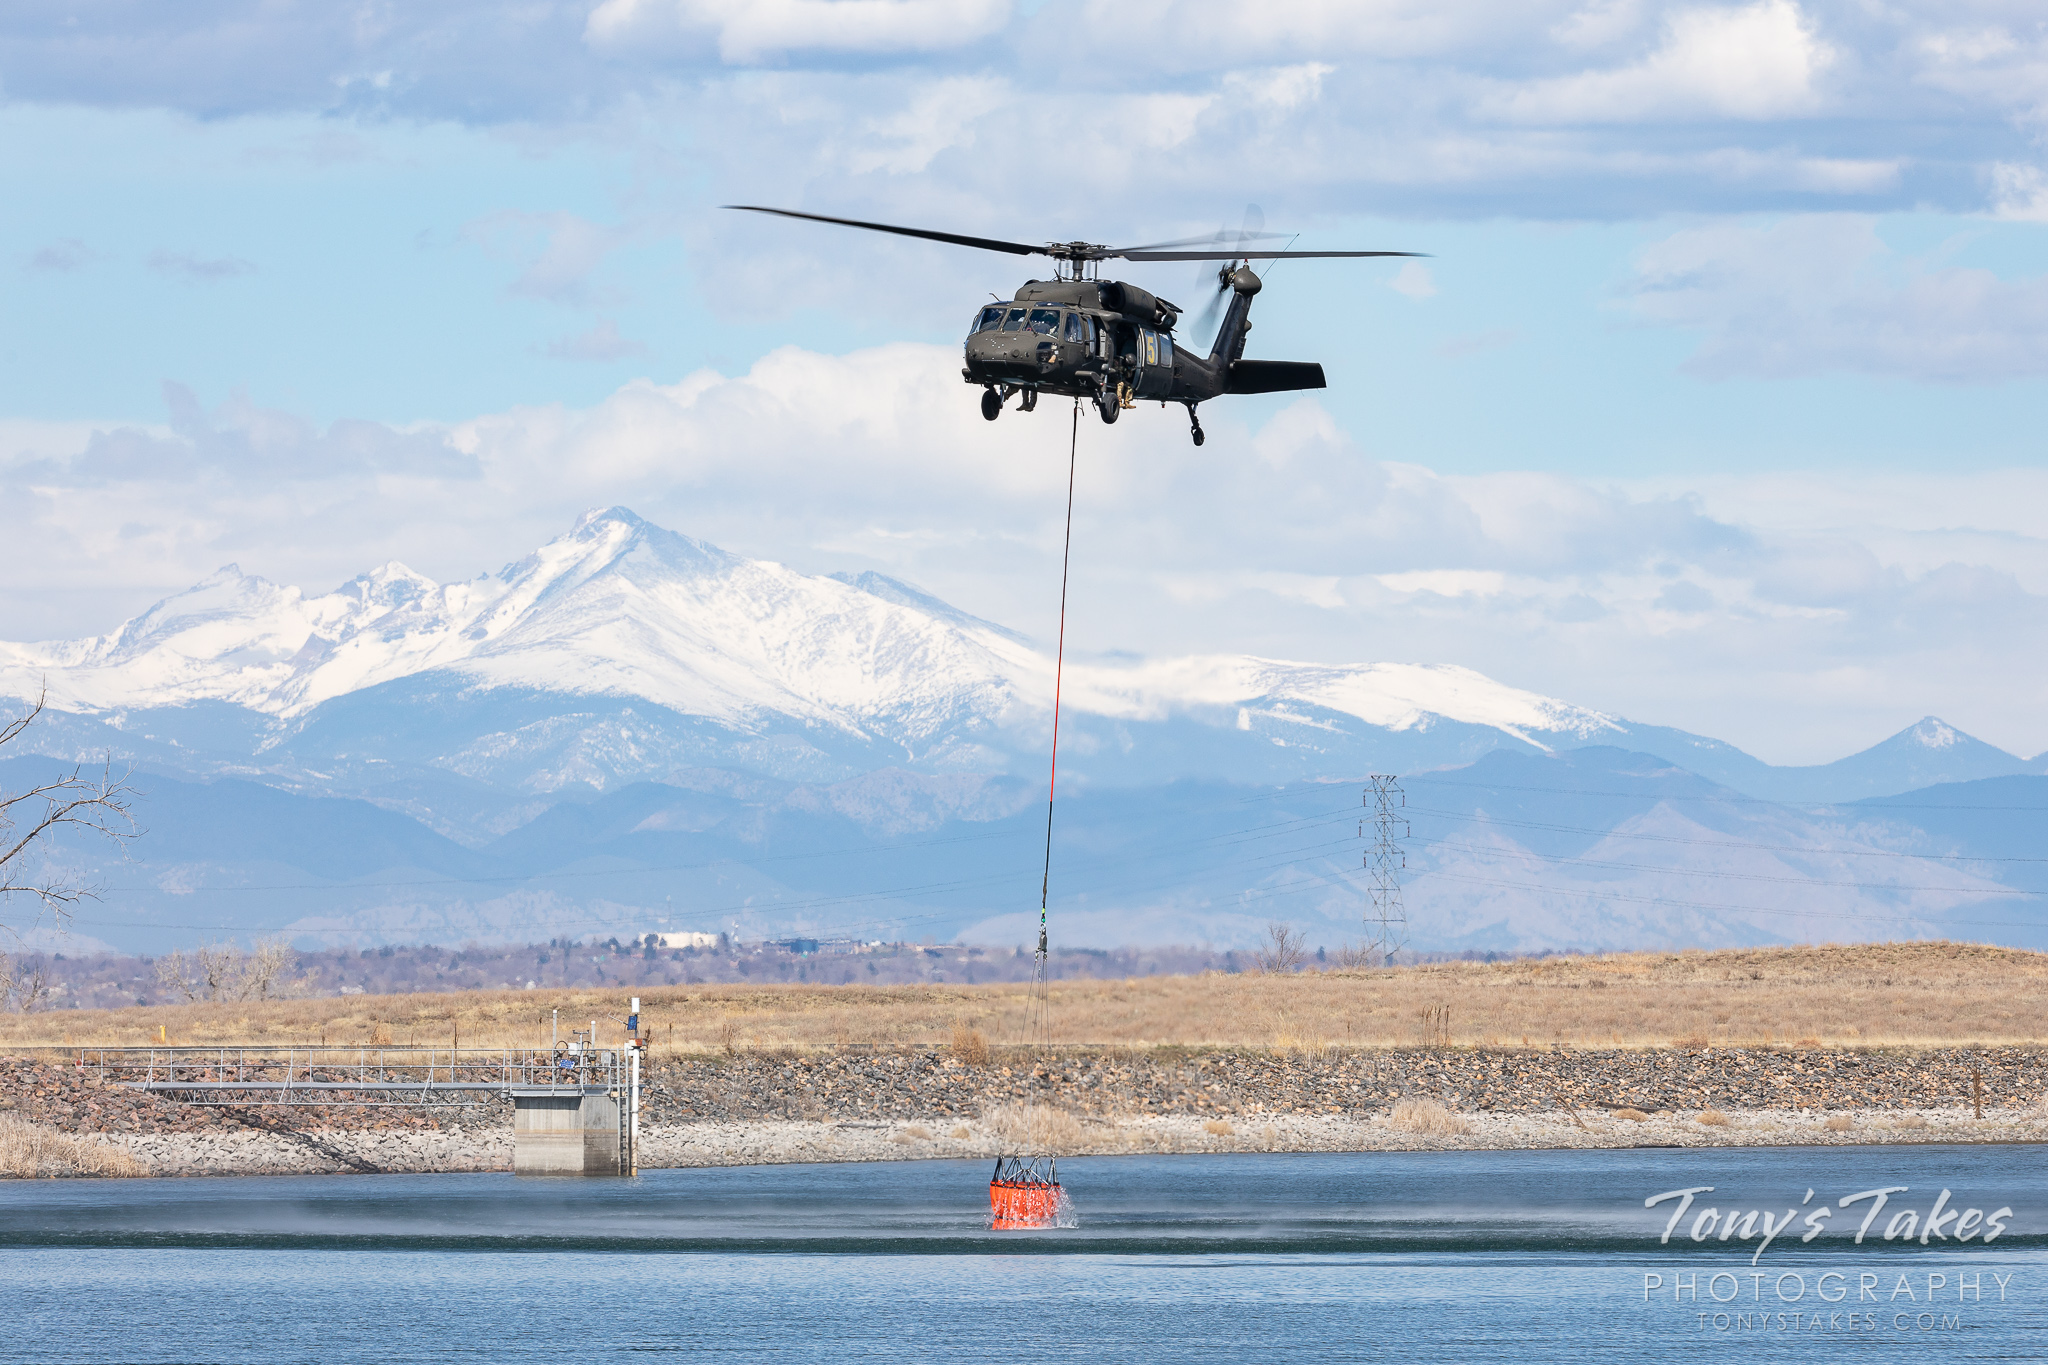 A Colorado National Guard UH-60 Blackhawk picks up water in a firefighting bucket with the snow-capped mountains in the background. (© Tony's Takes)